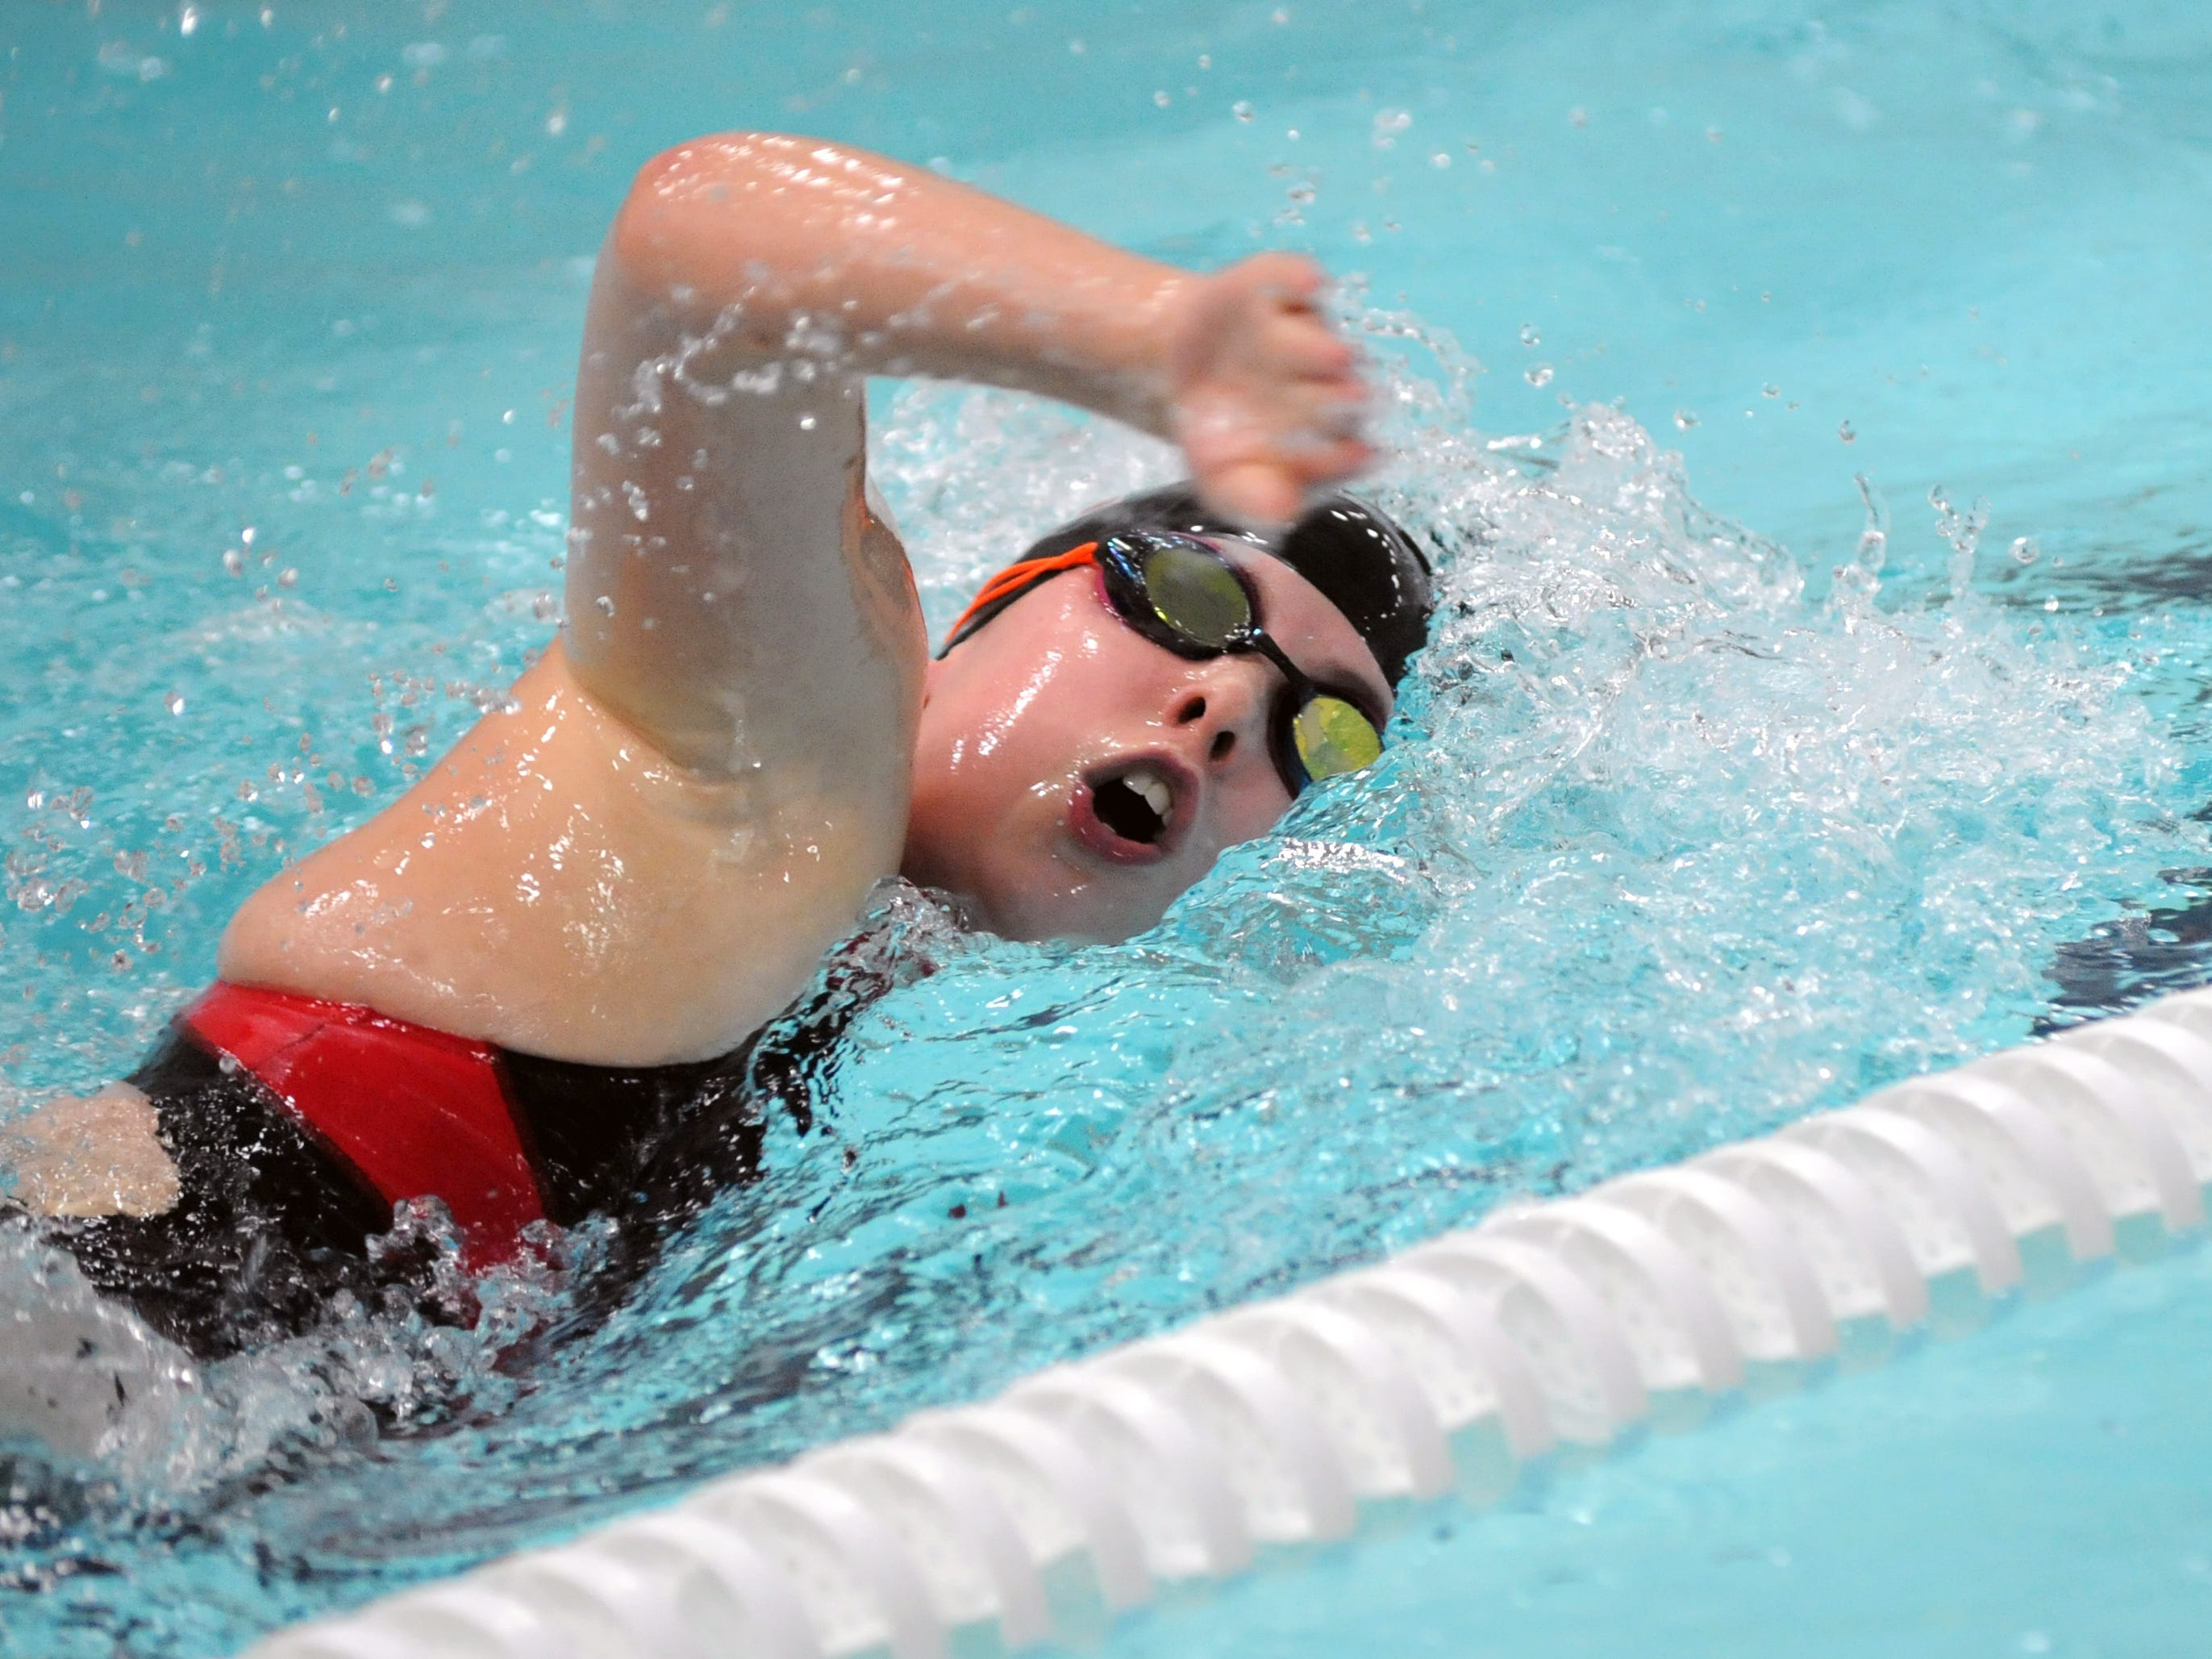 Coshocton's Taylor Holderbaum competes in the 200 meter freestyle Saturday during the 2015 Coshocton Invitational at Coshocton High School.